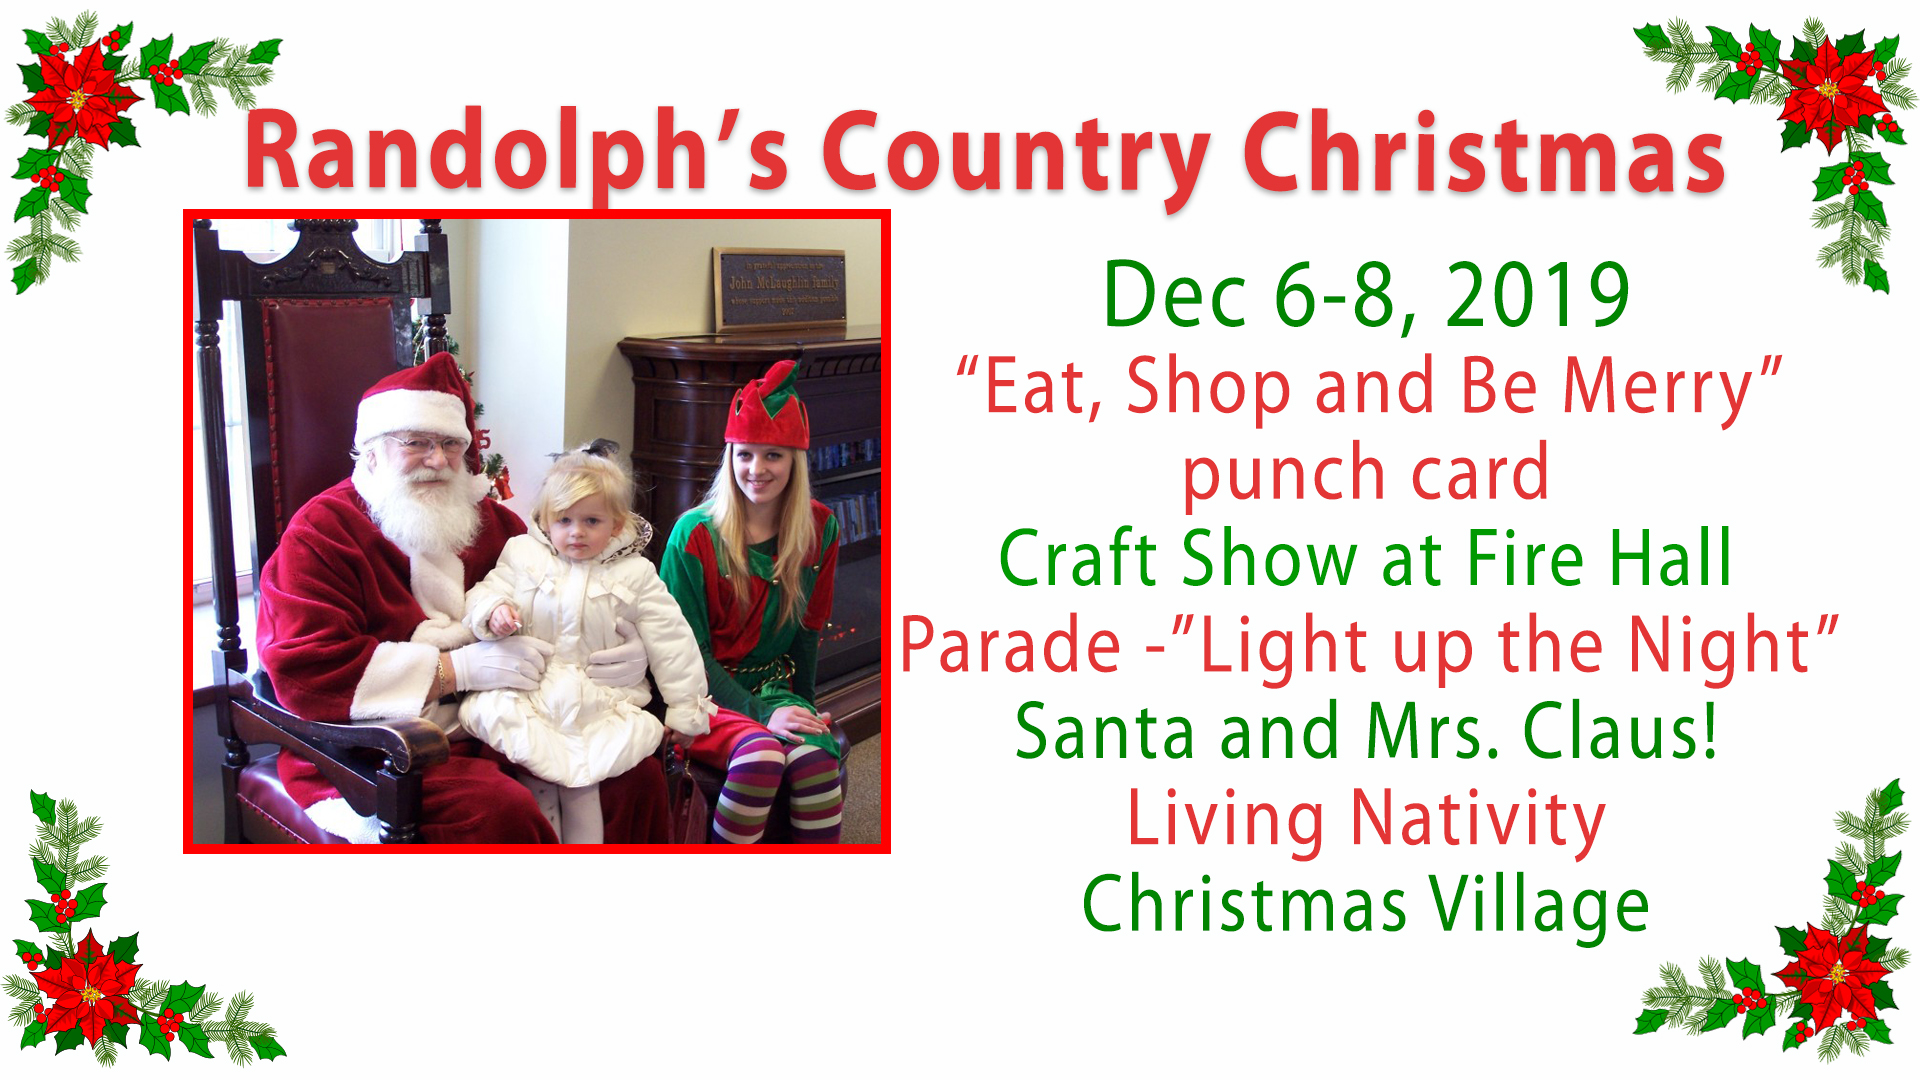 Randolph's Country Christmas 2019